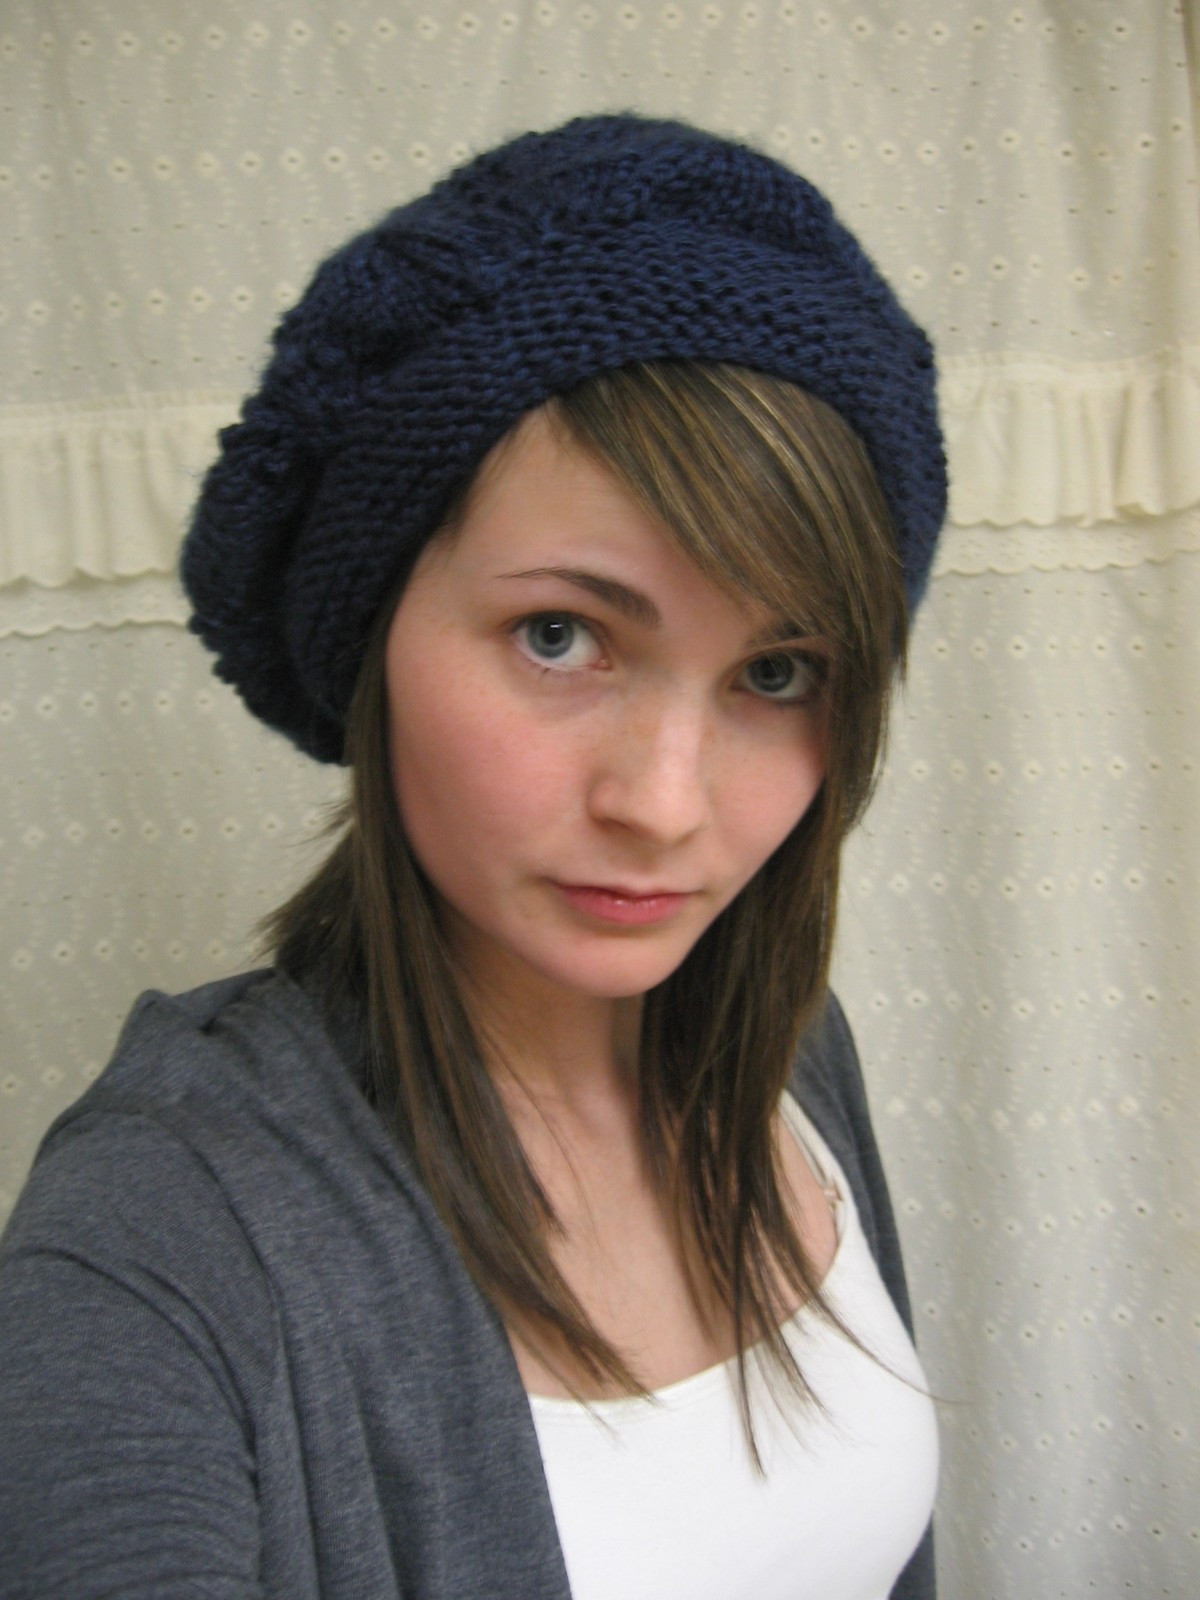 Knit Beret Hat · How To Make A Beret · Knitting on Cut Out